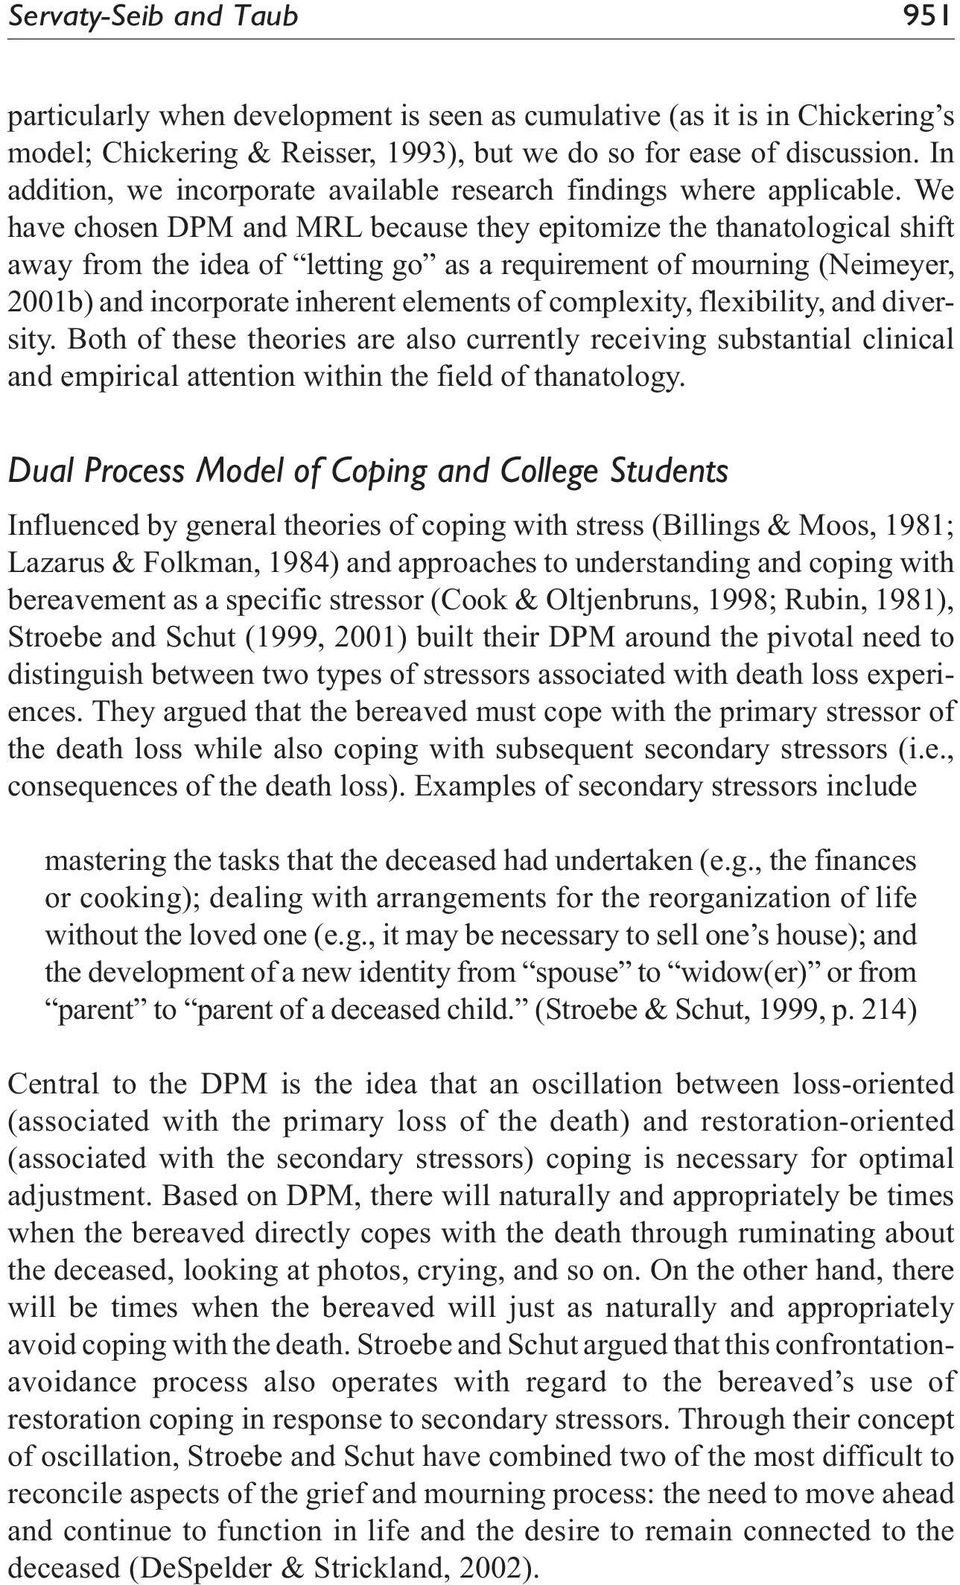 We have chosen DPM and MRL because they epitomize the thanatological shift away from the idea of letting go as a requirement of mourning (Neimeyer, 2001b) and incorporate inherent elements of